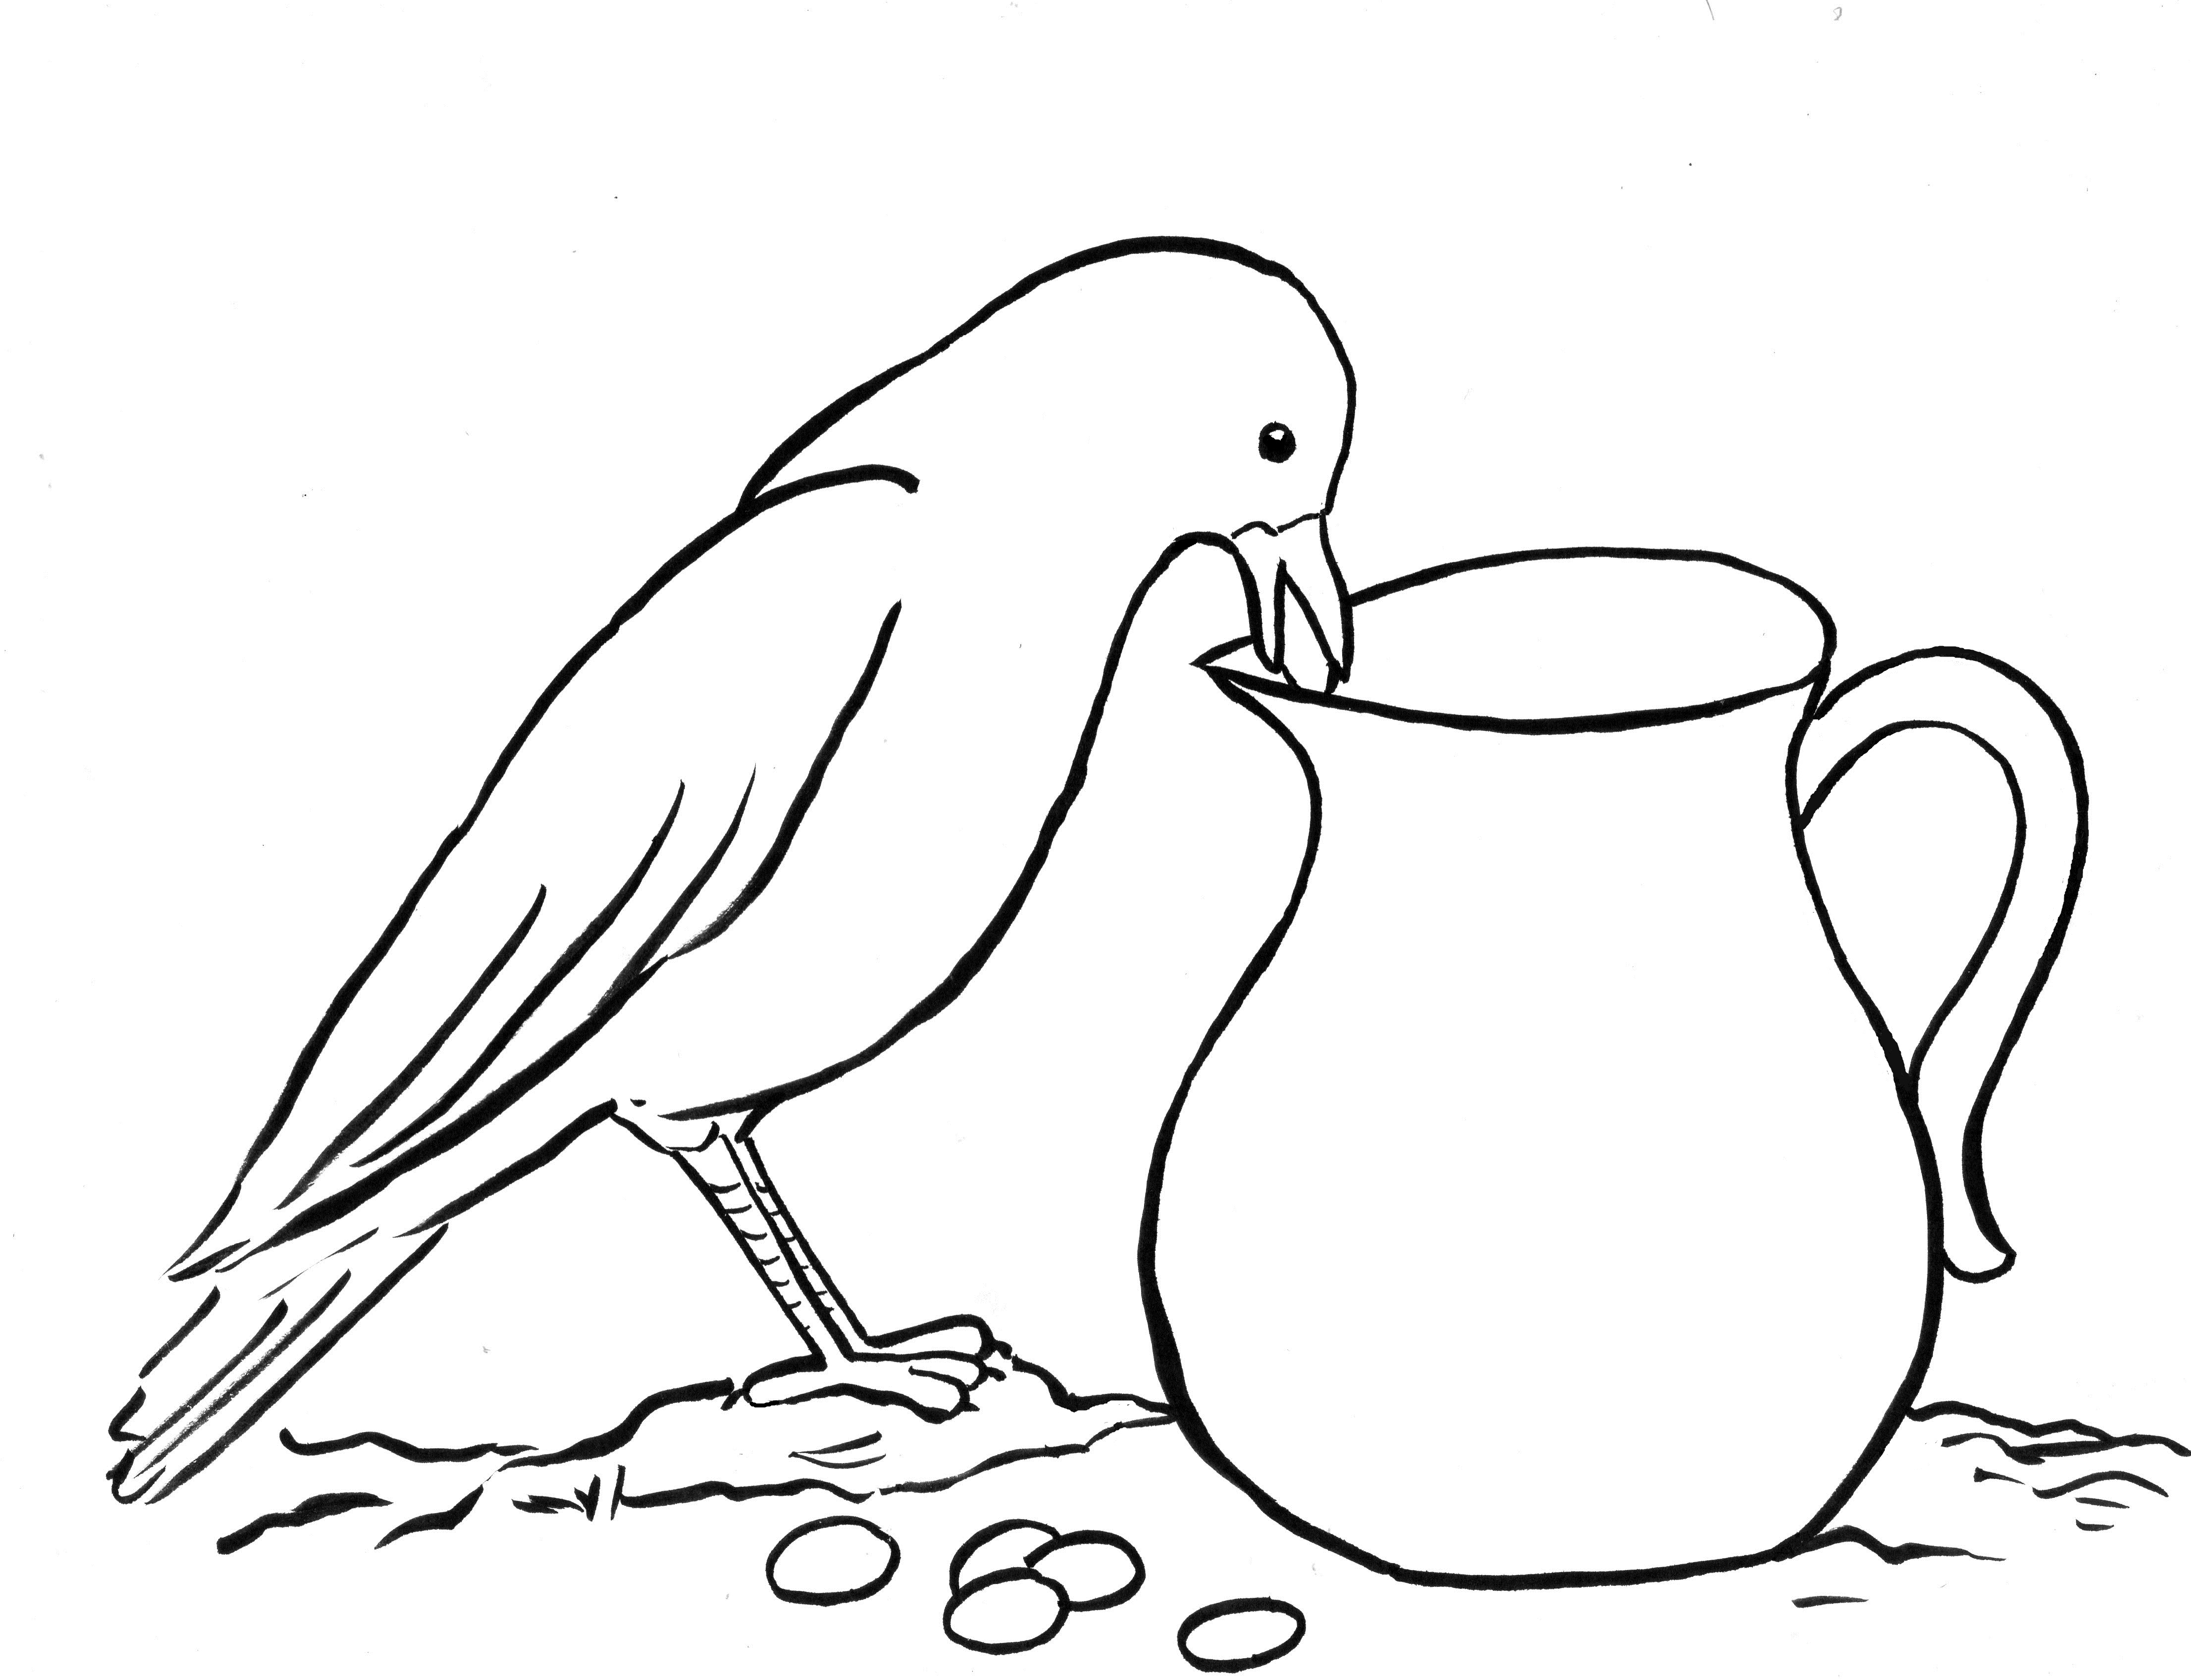 coloring pages pitcher of water - photo#38